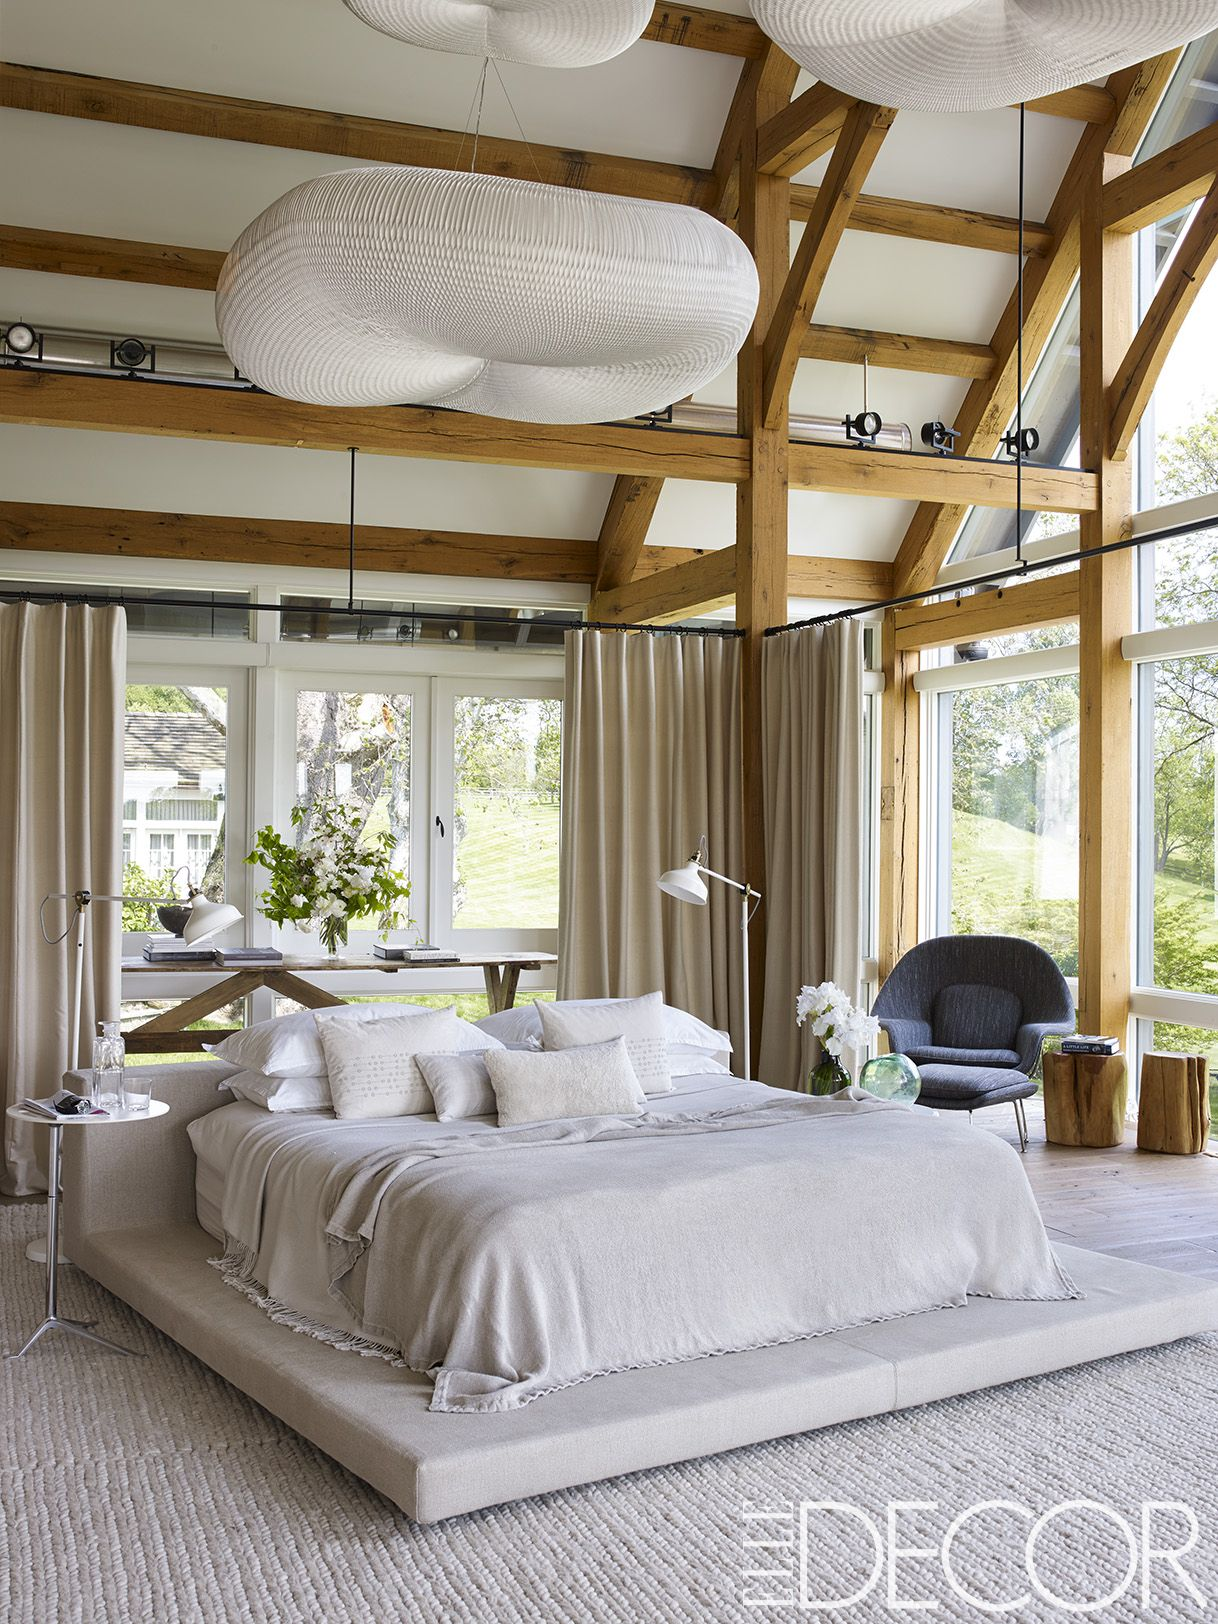 Awesome 25 Minimalist Bedroom Decor Ideas   Modern Designs For Minimalist Bedrooms